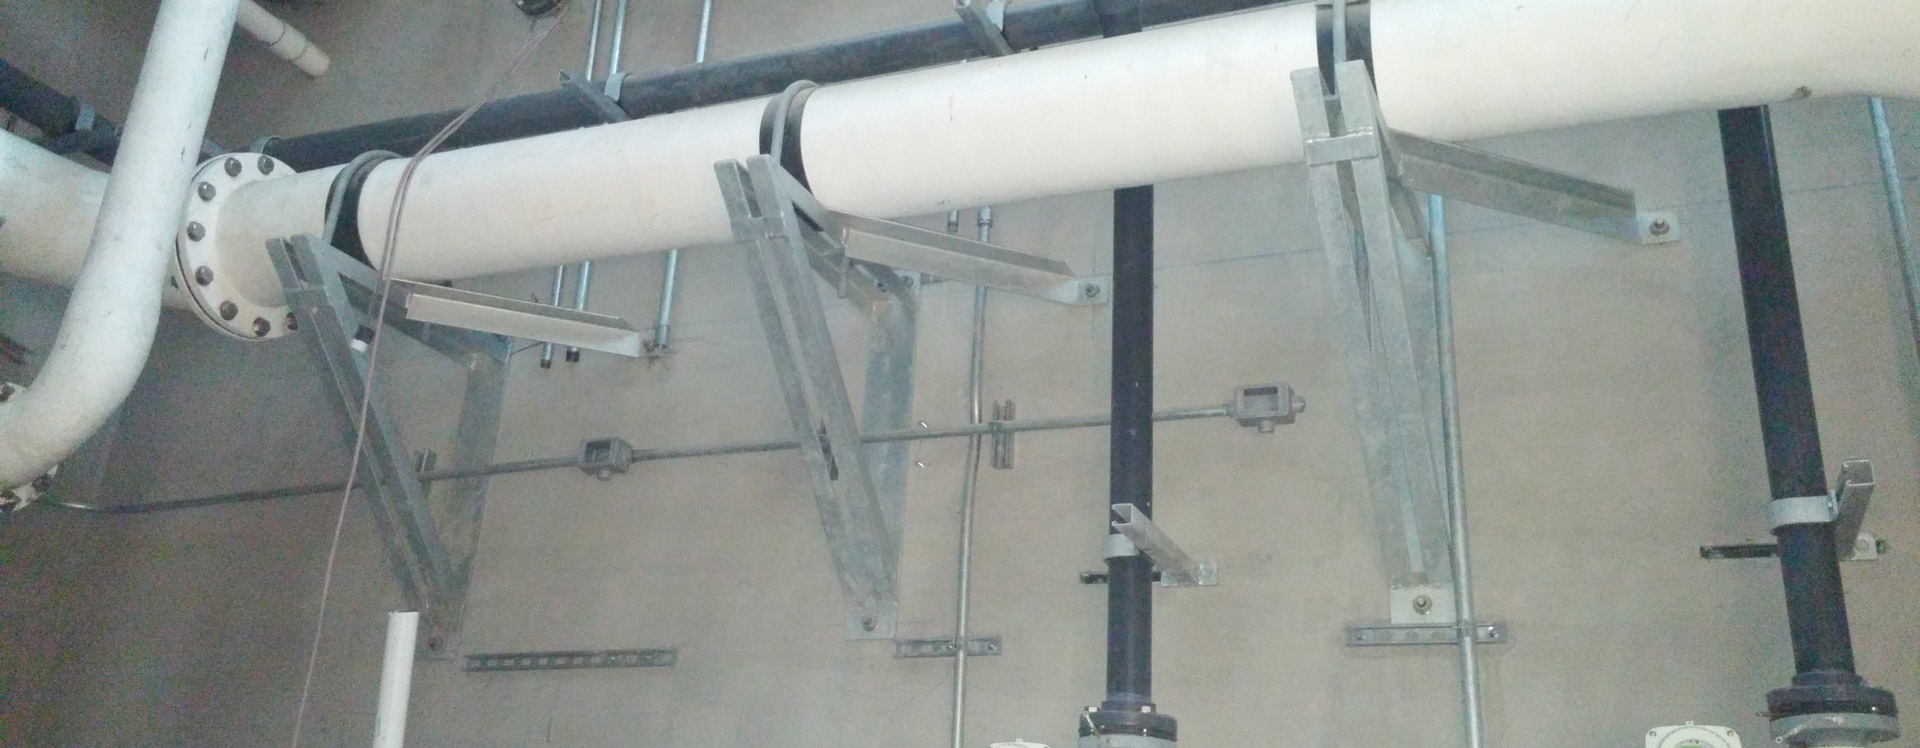 Pipe Brackets Pipe Support Products Kumar Industries